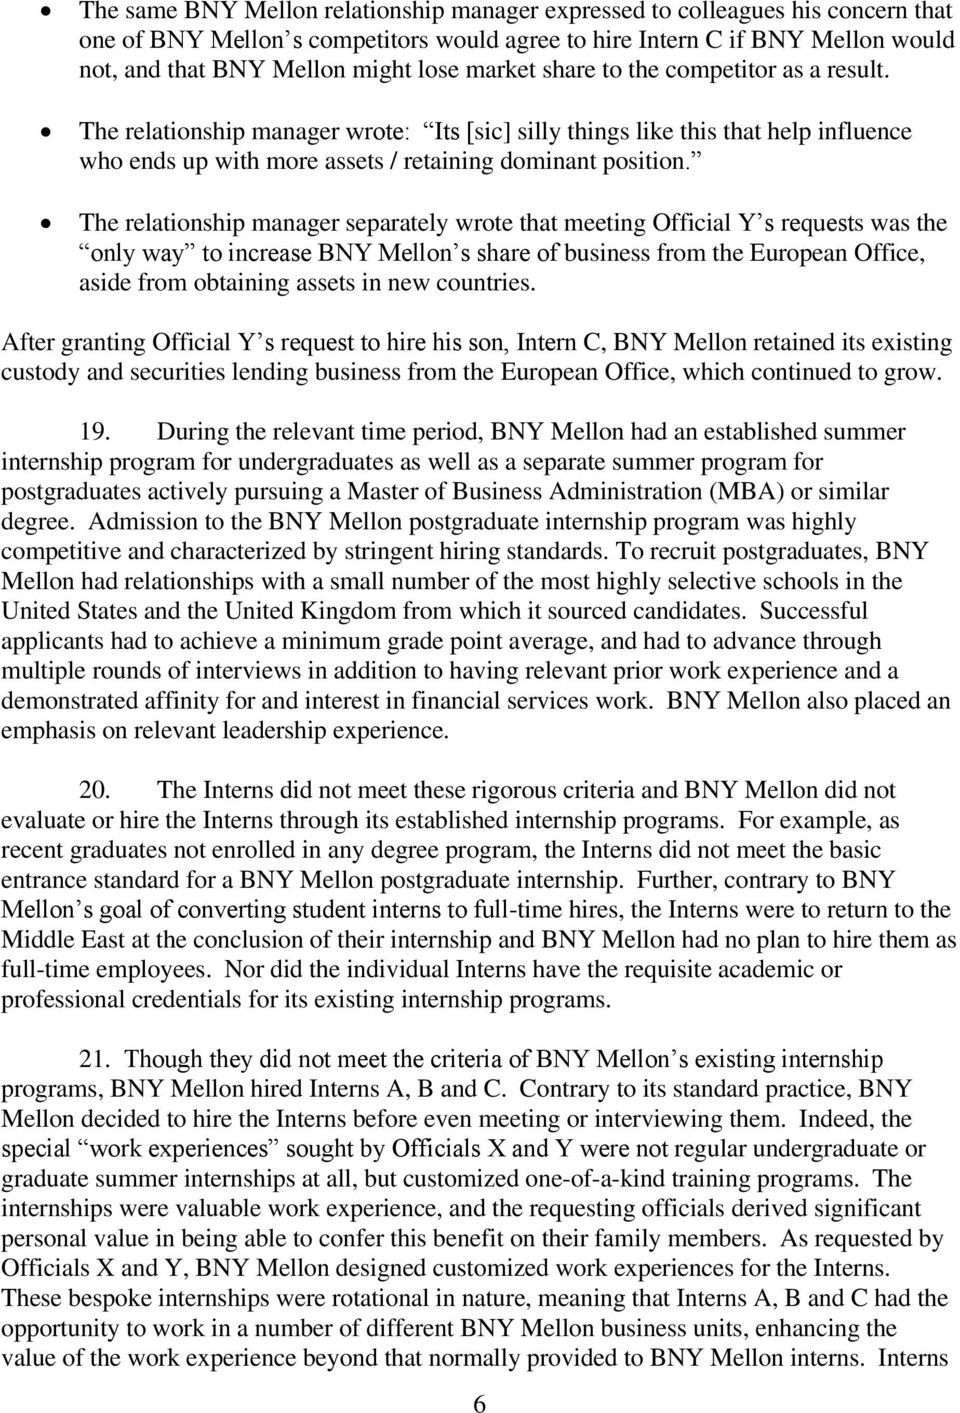 The relationship manager separately wrote that meeting Official Y s requests was the only way to increase BNY Mellon s share of business from the European Office, aside from obtaining assets in new